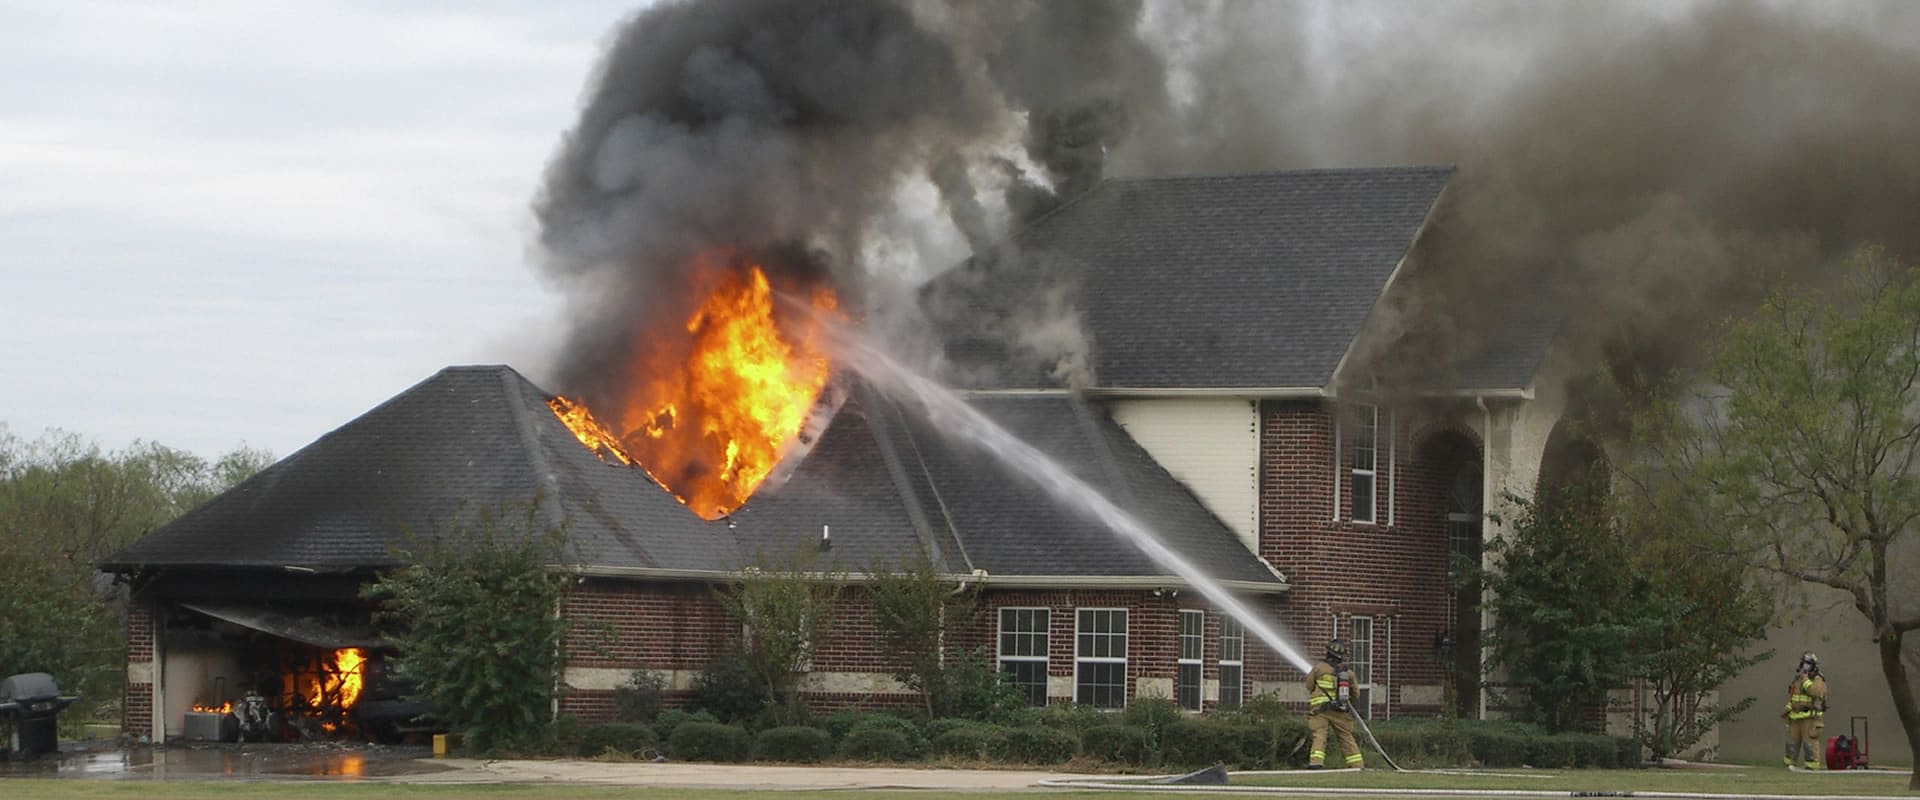 Fire Damage Restoration in Marietta